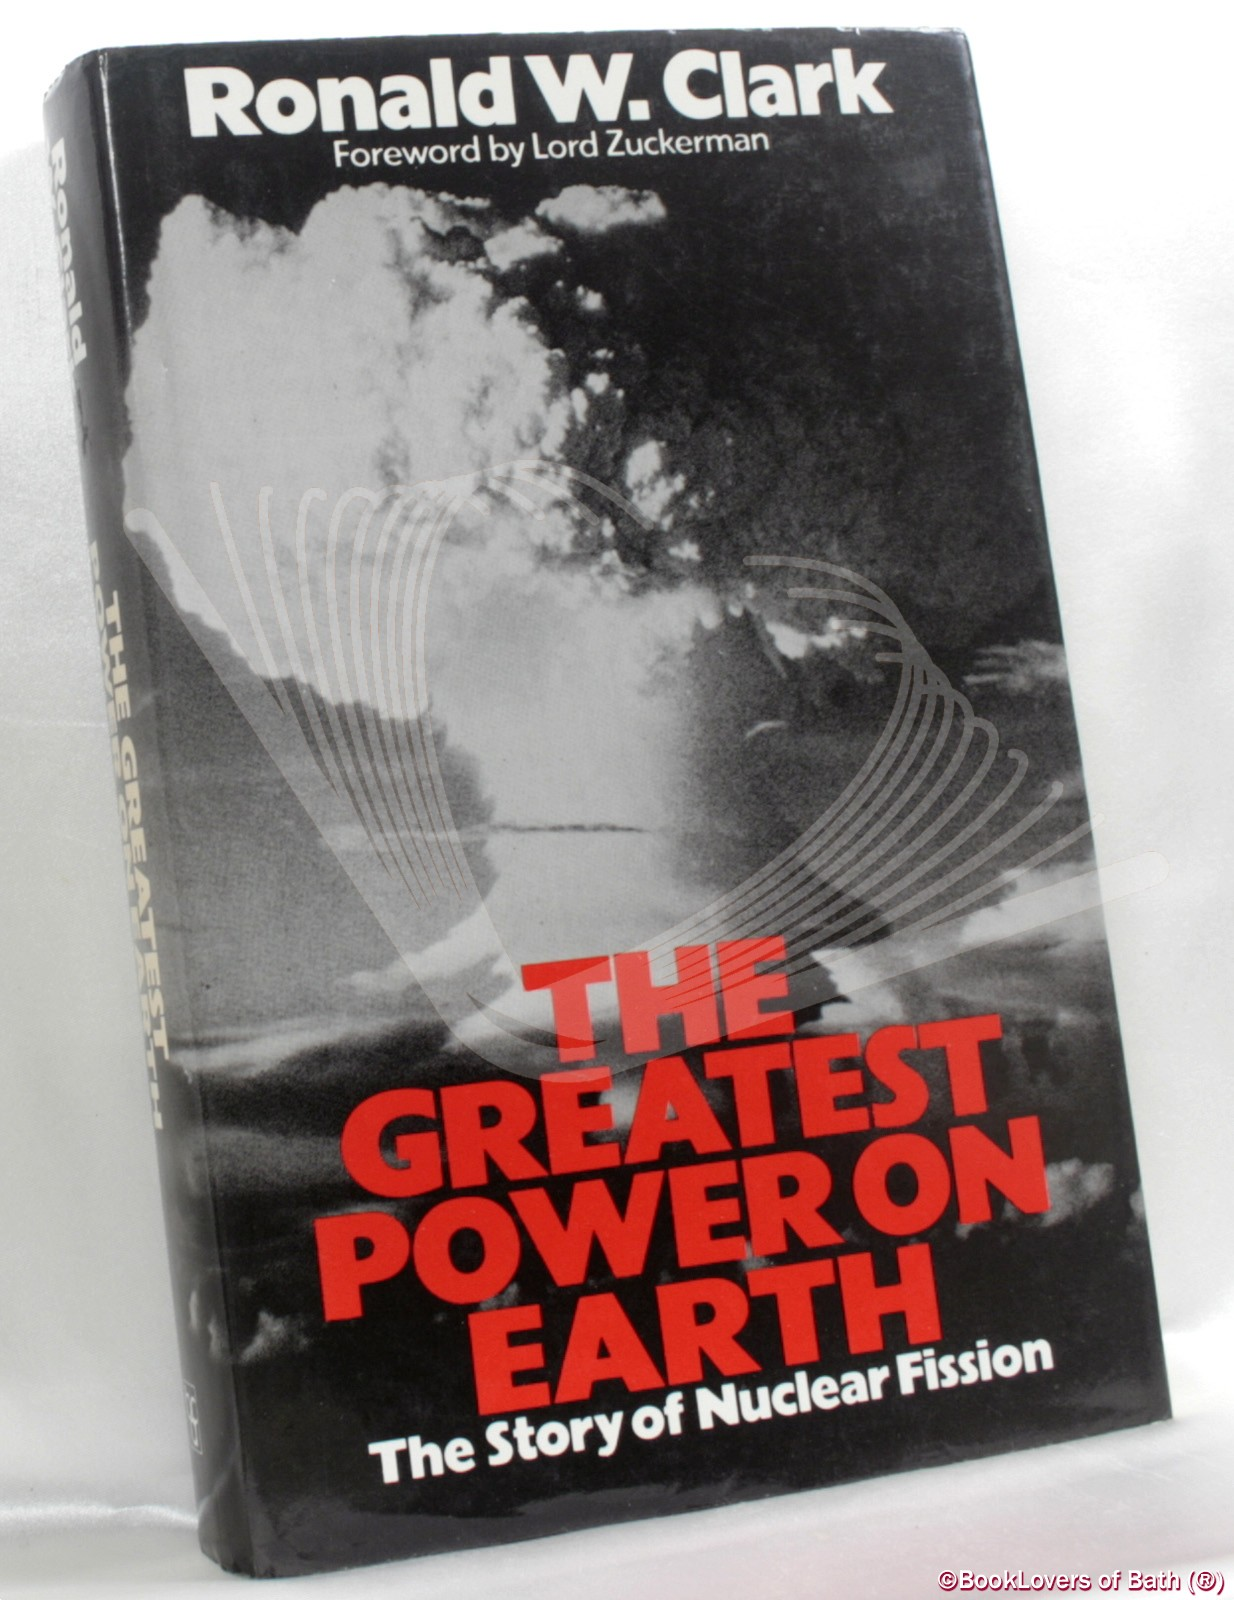 The Greatest Power on Earth: The Story of Nuclear Fission - Ronald W. [William] Clark